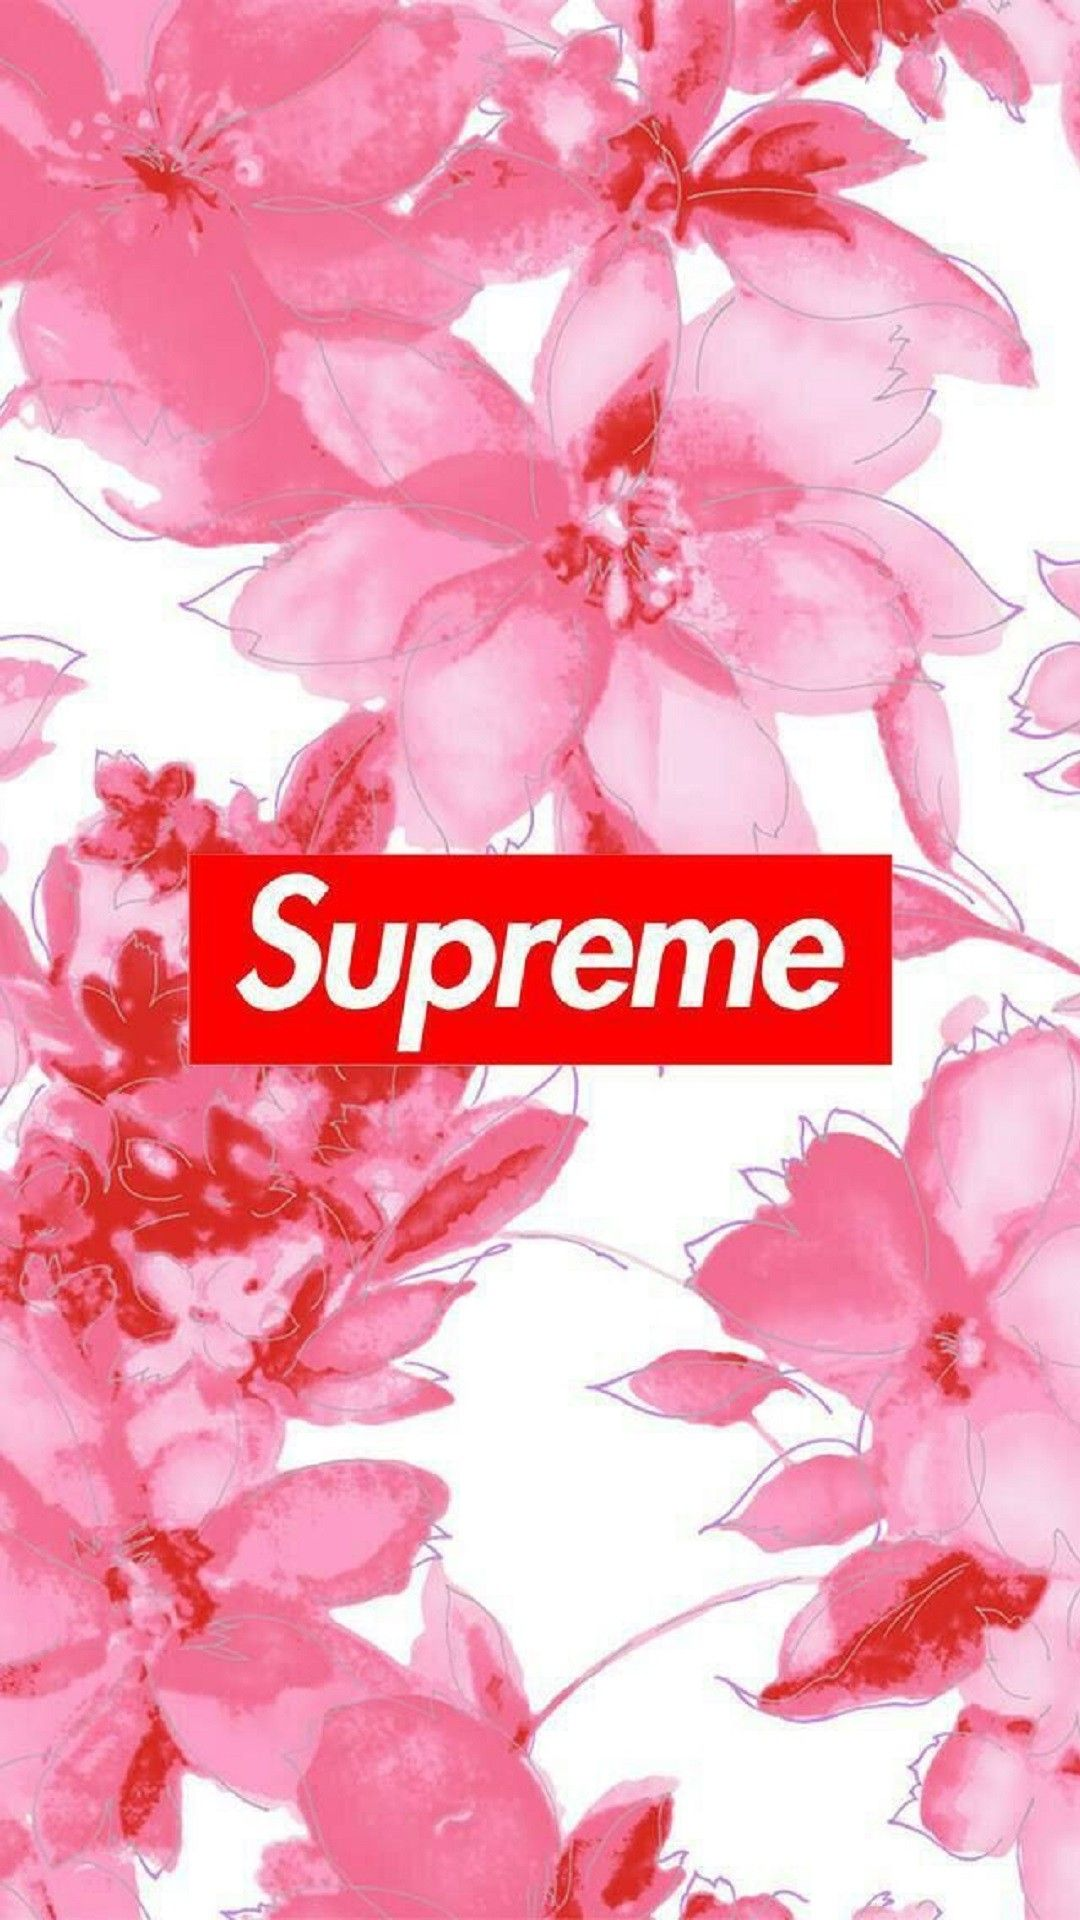 Pink Flower Apple Iphone 7 Plus Hd Wallpapers Available For Free Download Supreme Wallpaper Supreme Iphone Wallpaper Pink Wallpaper Iphone